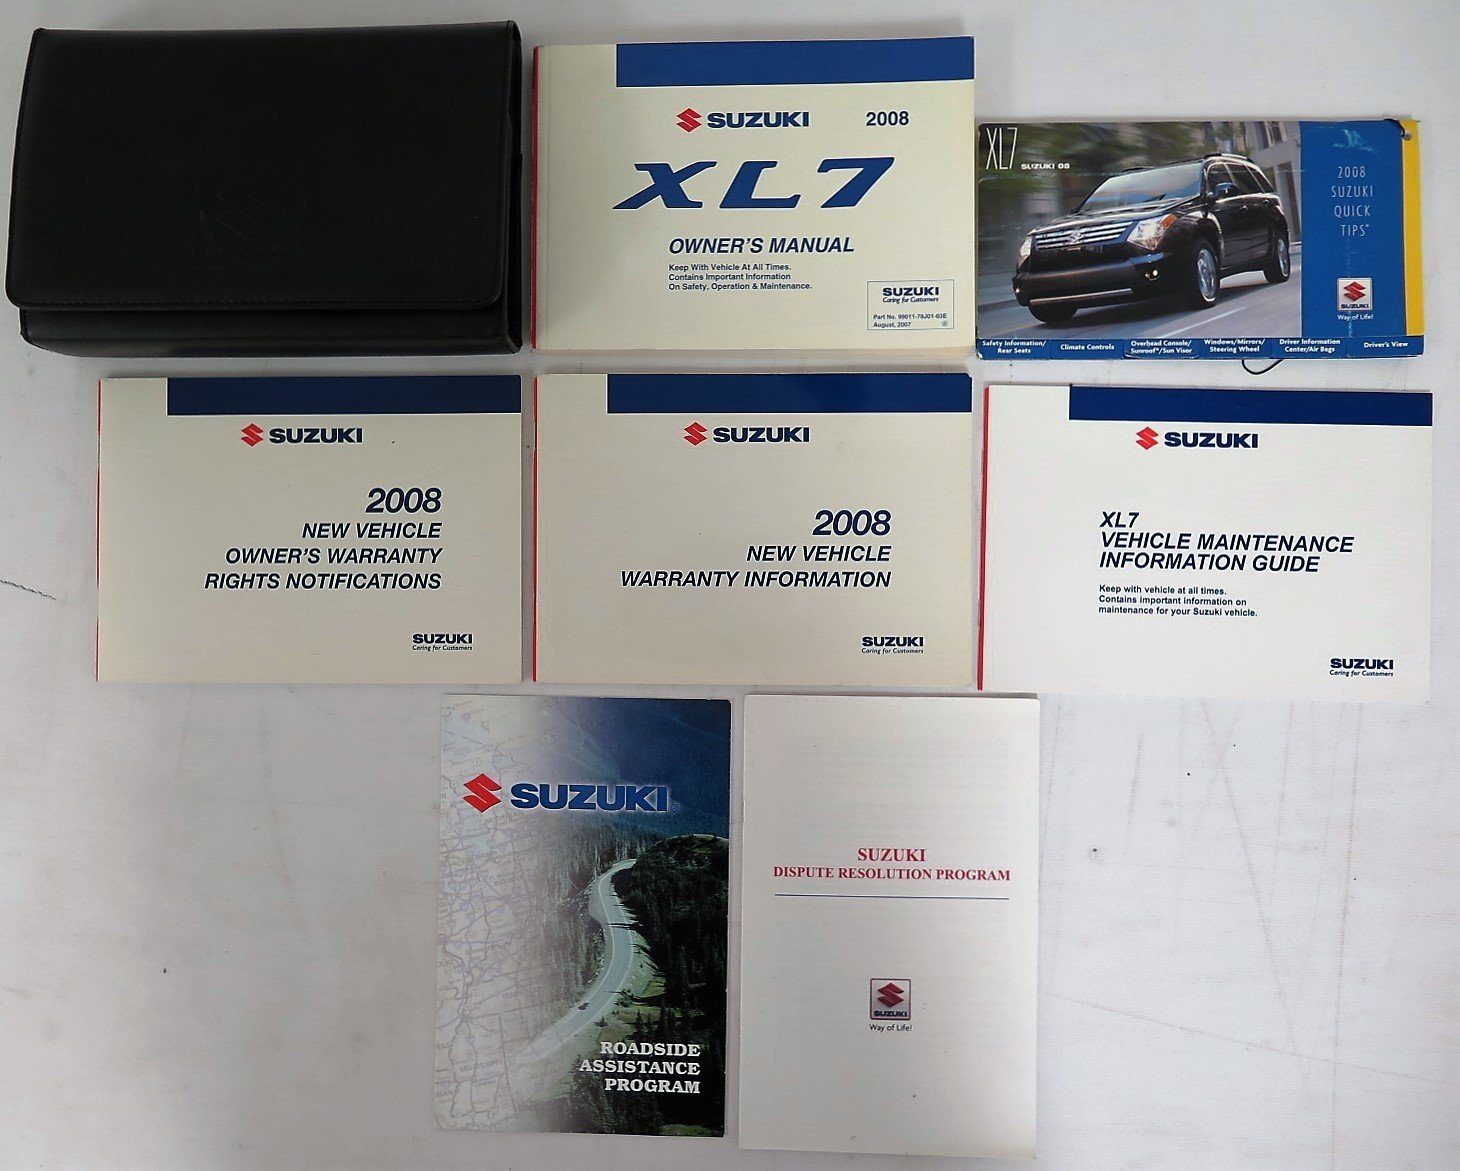 2008 suzuki xl7 owners manual with case book set suzuki amazon 2008 suzuki xl7 owners manual with case book set suzuki amazon books publicscrutiny Image collections